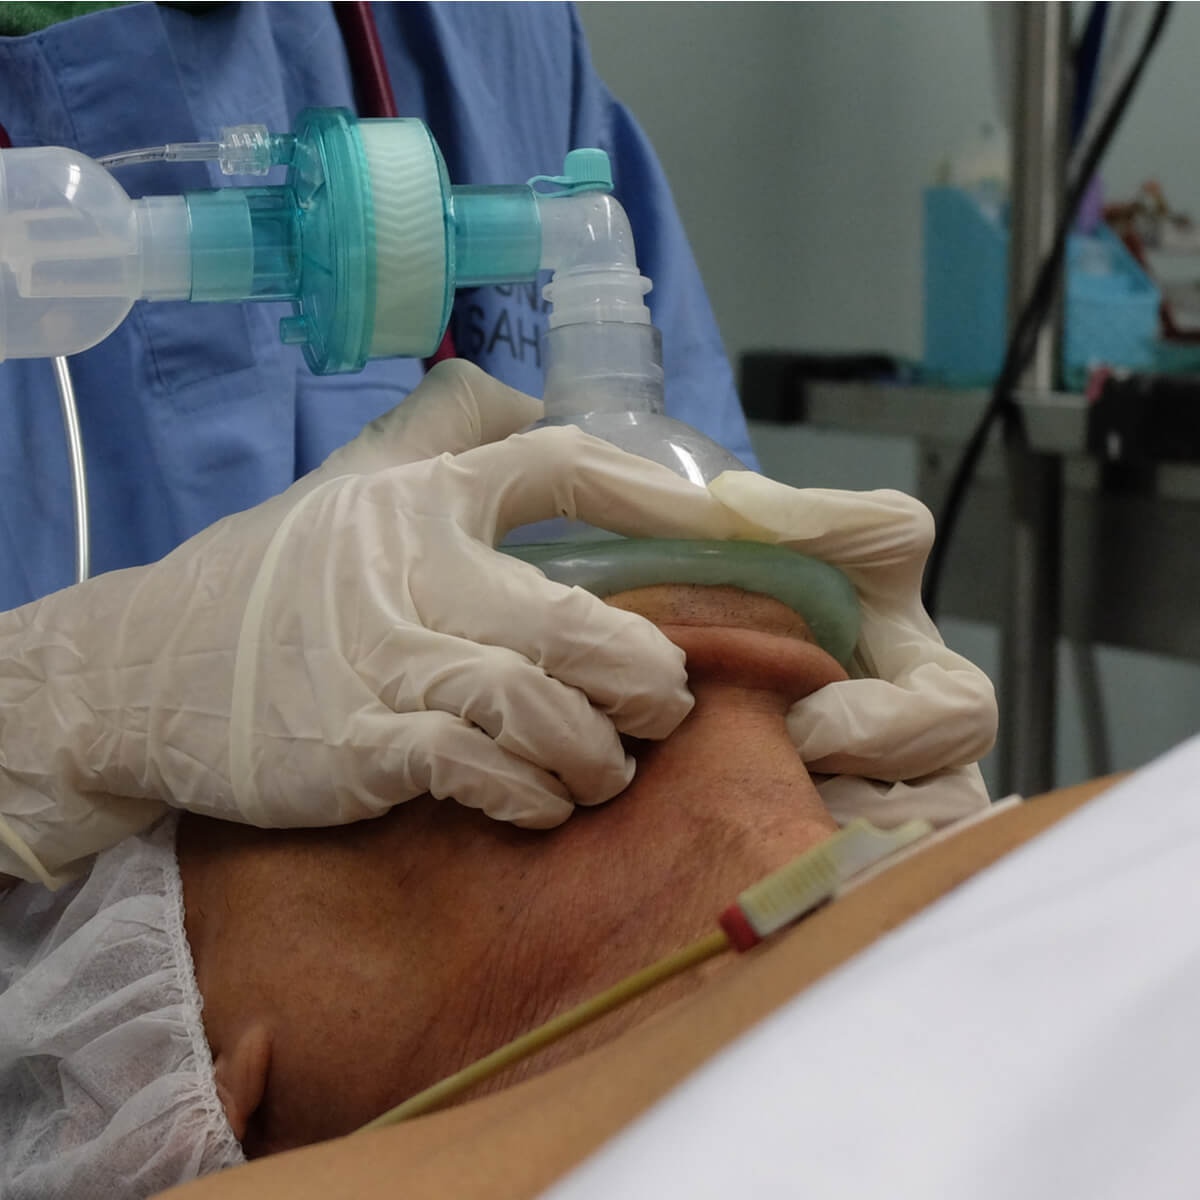 Search anaesthetist jobs in Malta